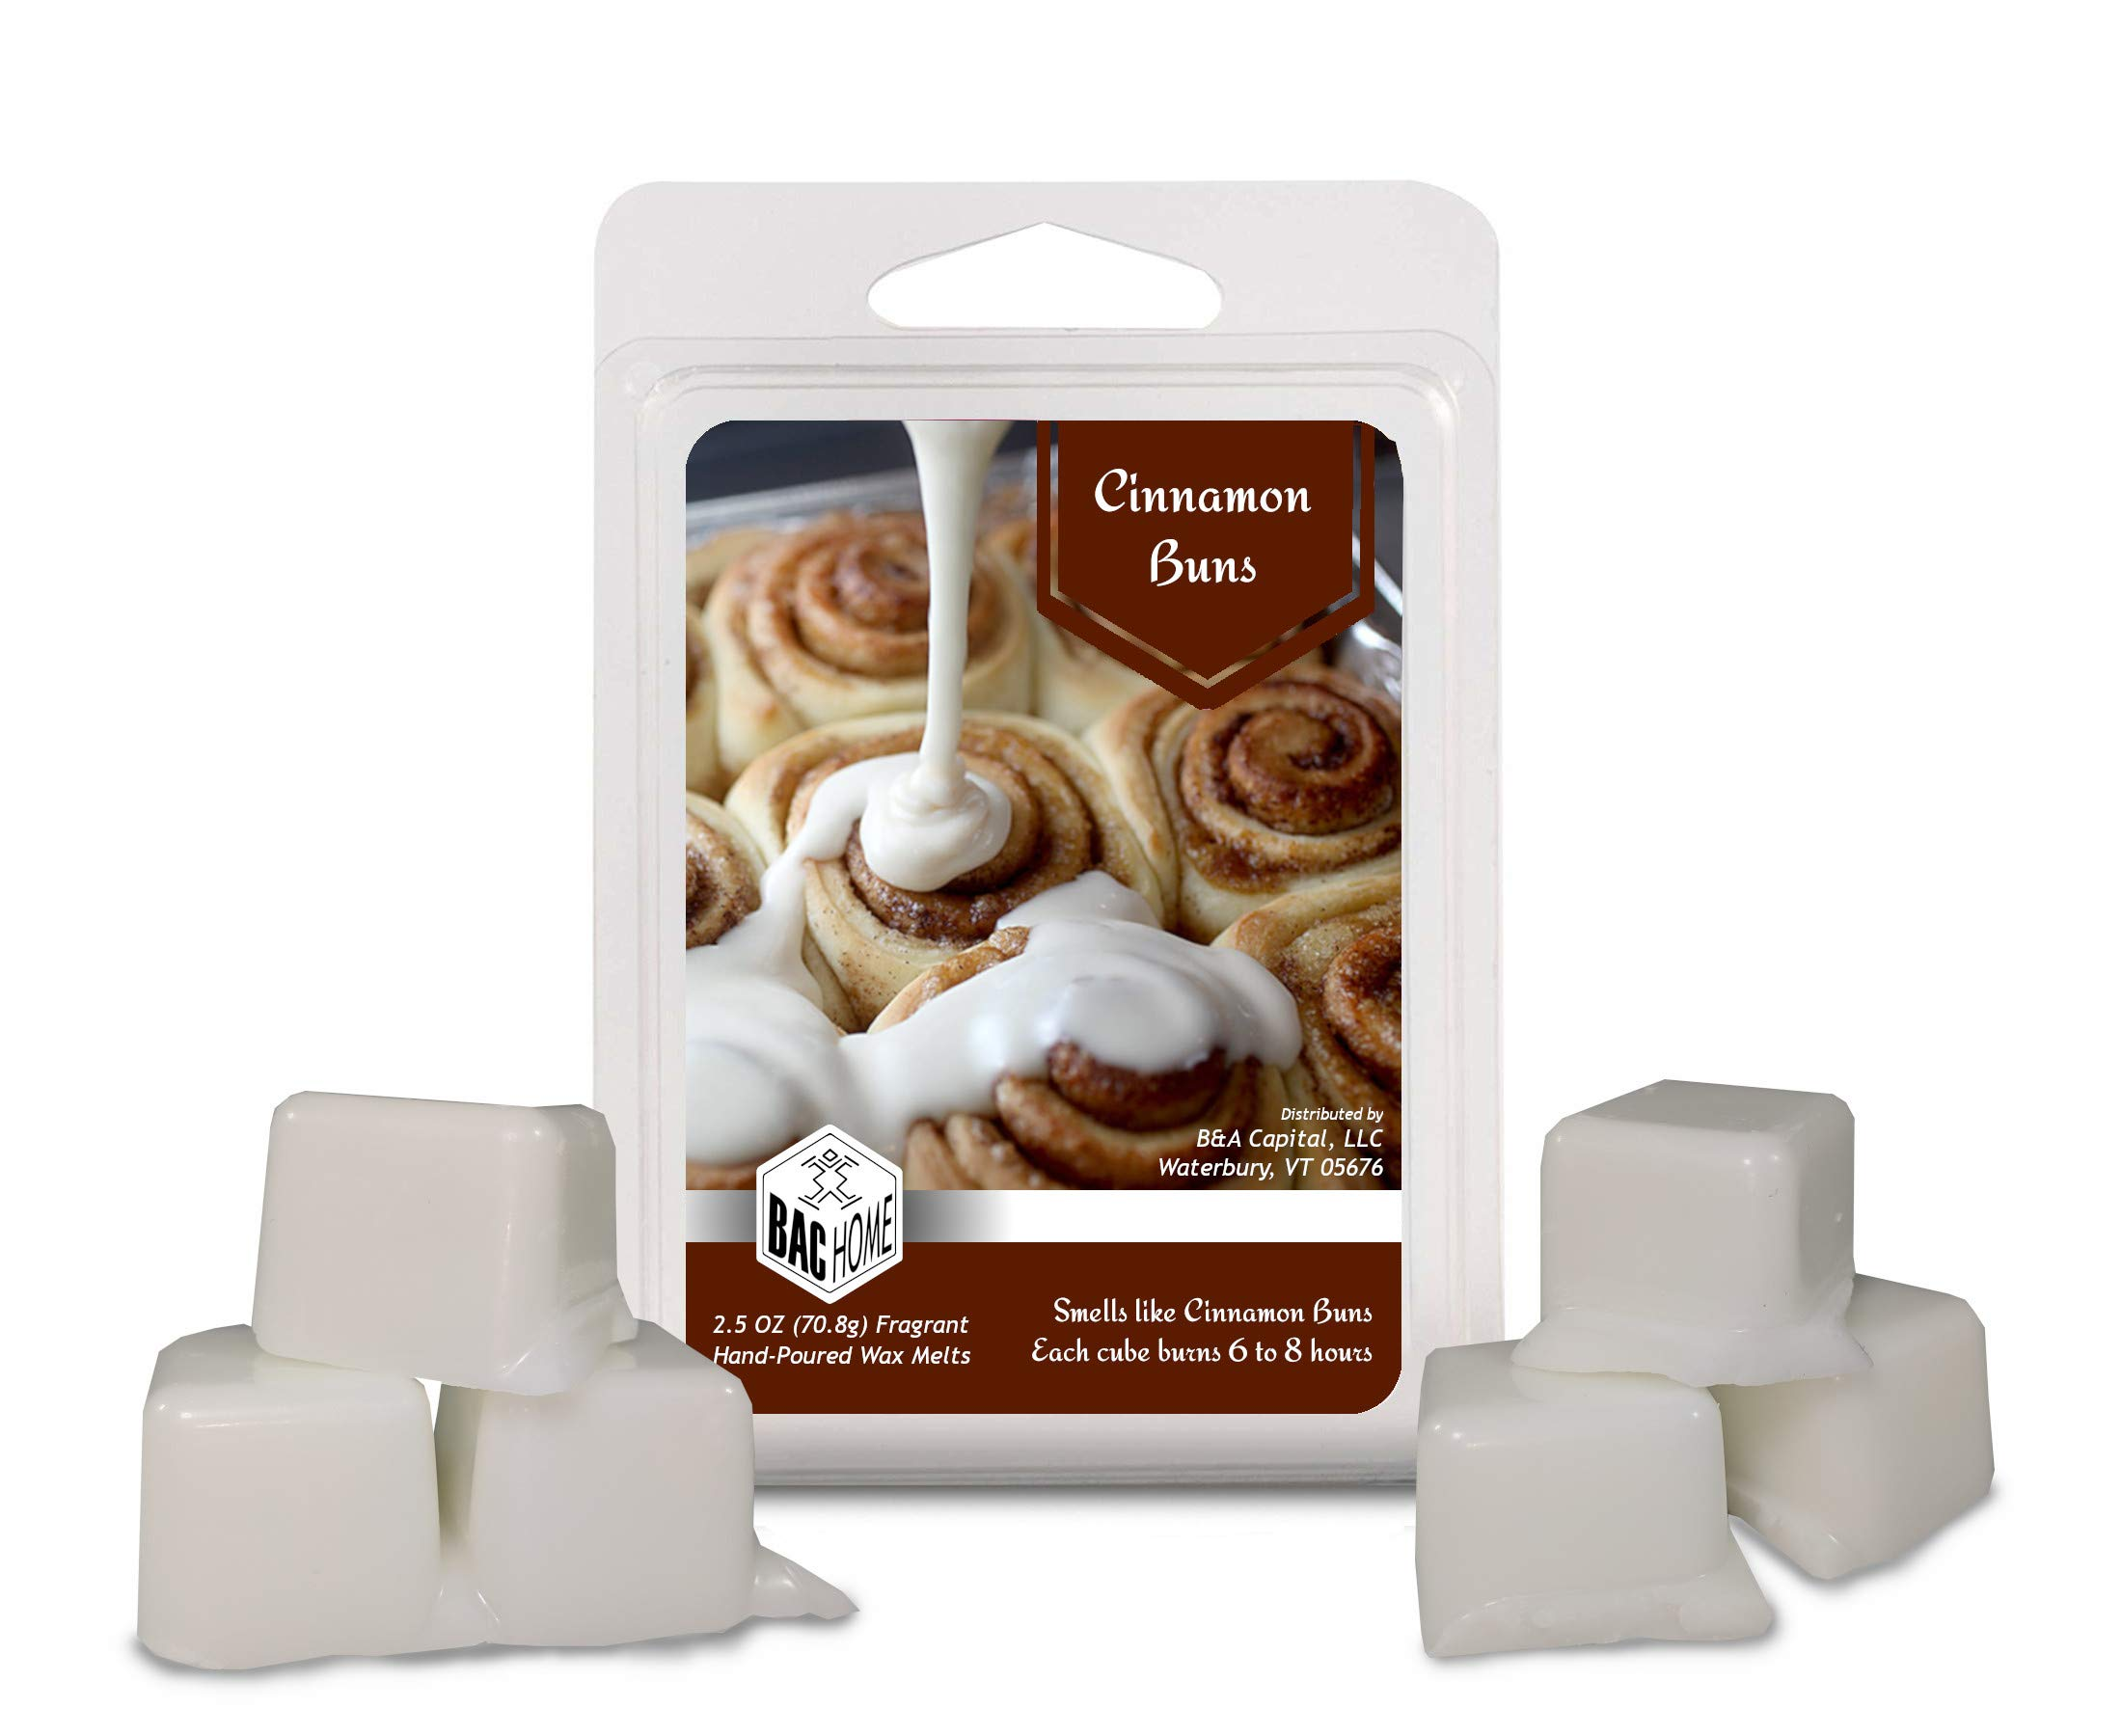 BAC Home 4 Pack - Grandma's Kitchen Collection Soy Blend Scented Wax Melts Wax Cubes, 10.0 oz, [24 Cubes] with Spice Cake, Maple Syrup, Cinnamon Buns and Mulberry Jam by BAC Home (Image #2)